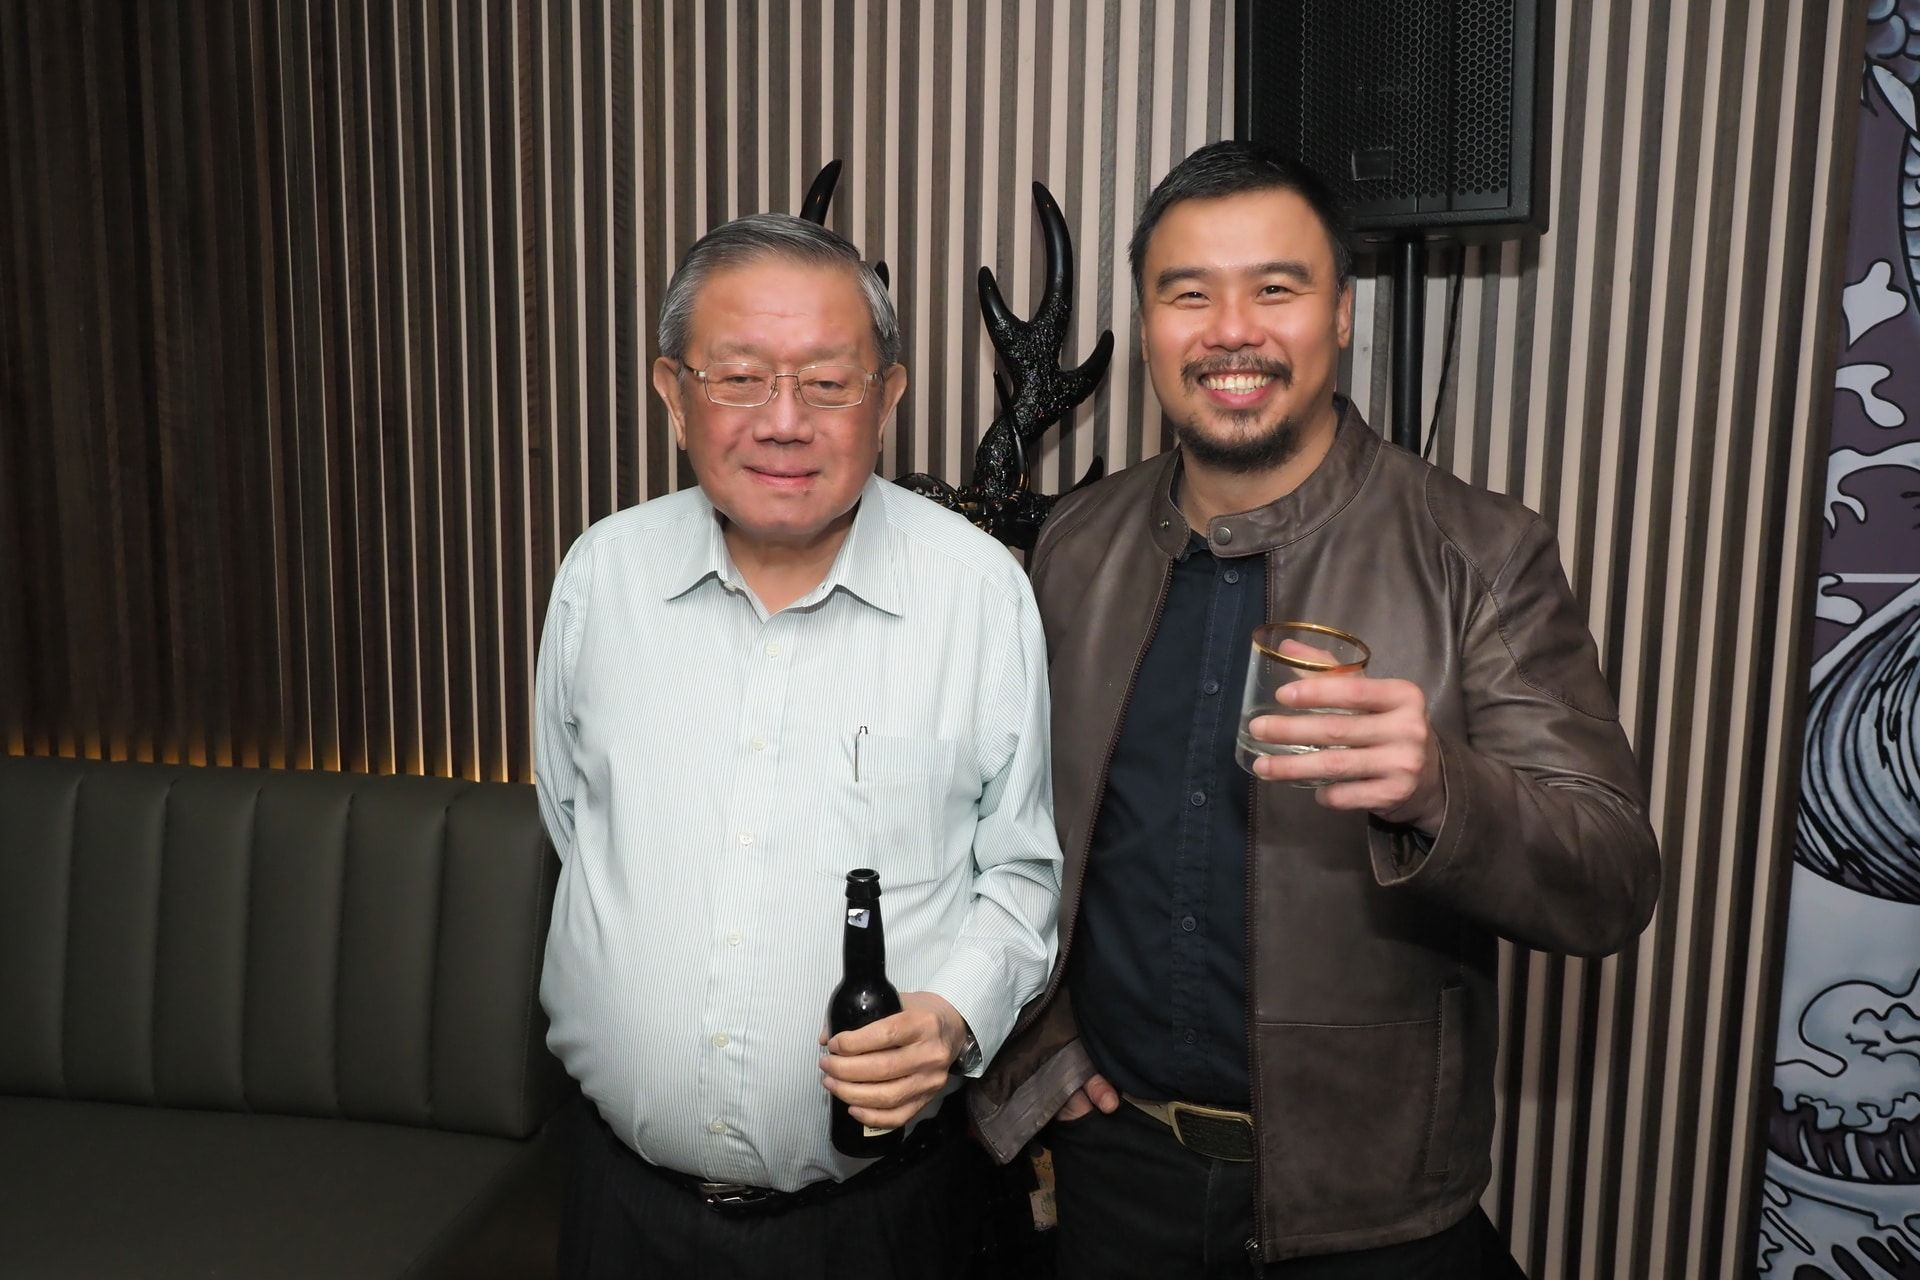 Tan Sri William Cheng and Shawn Lee